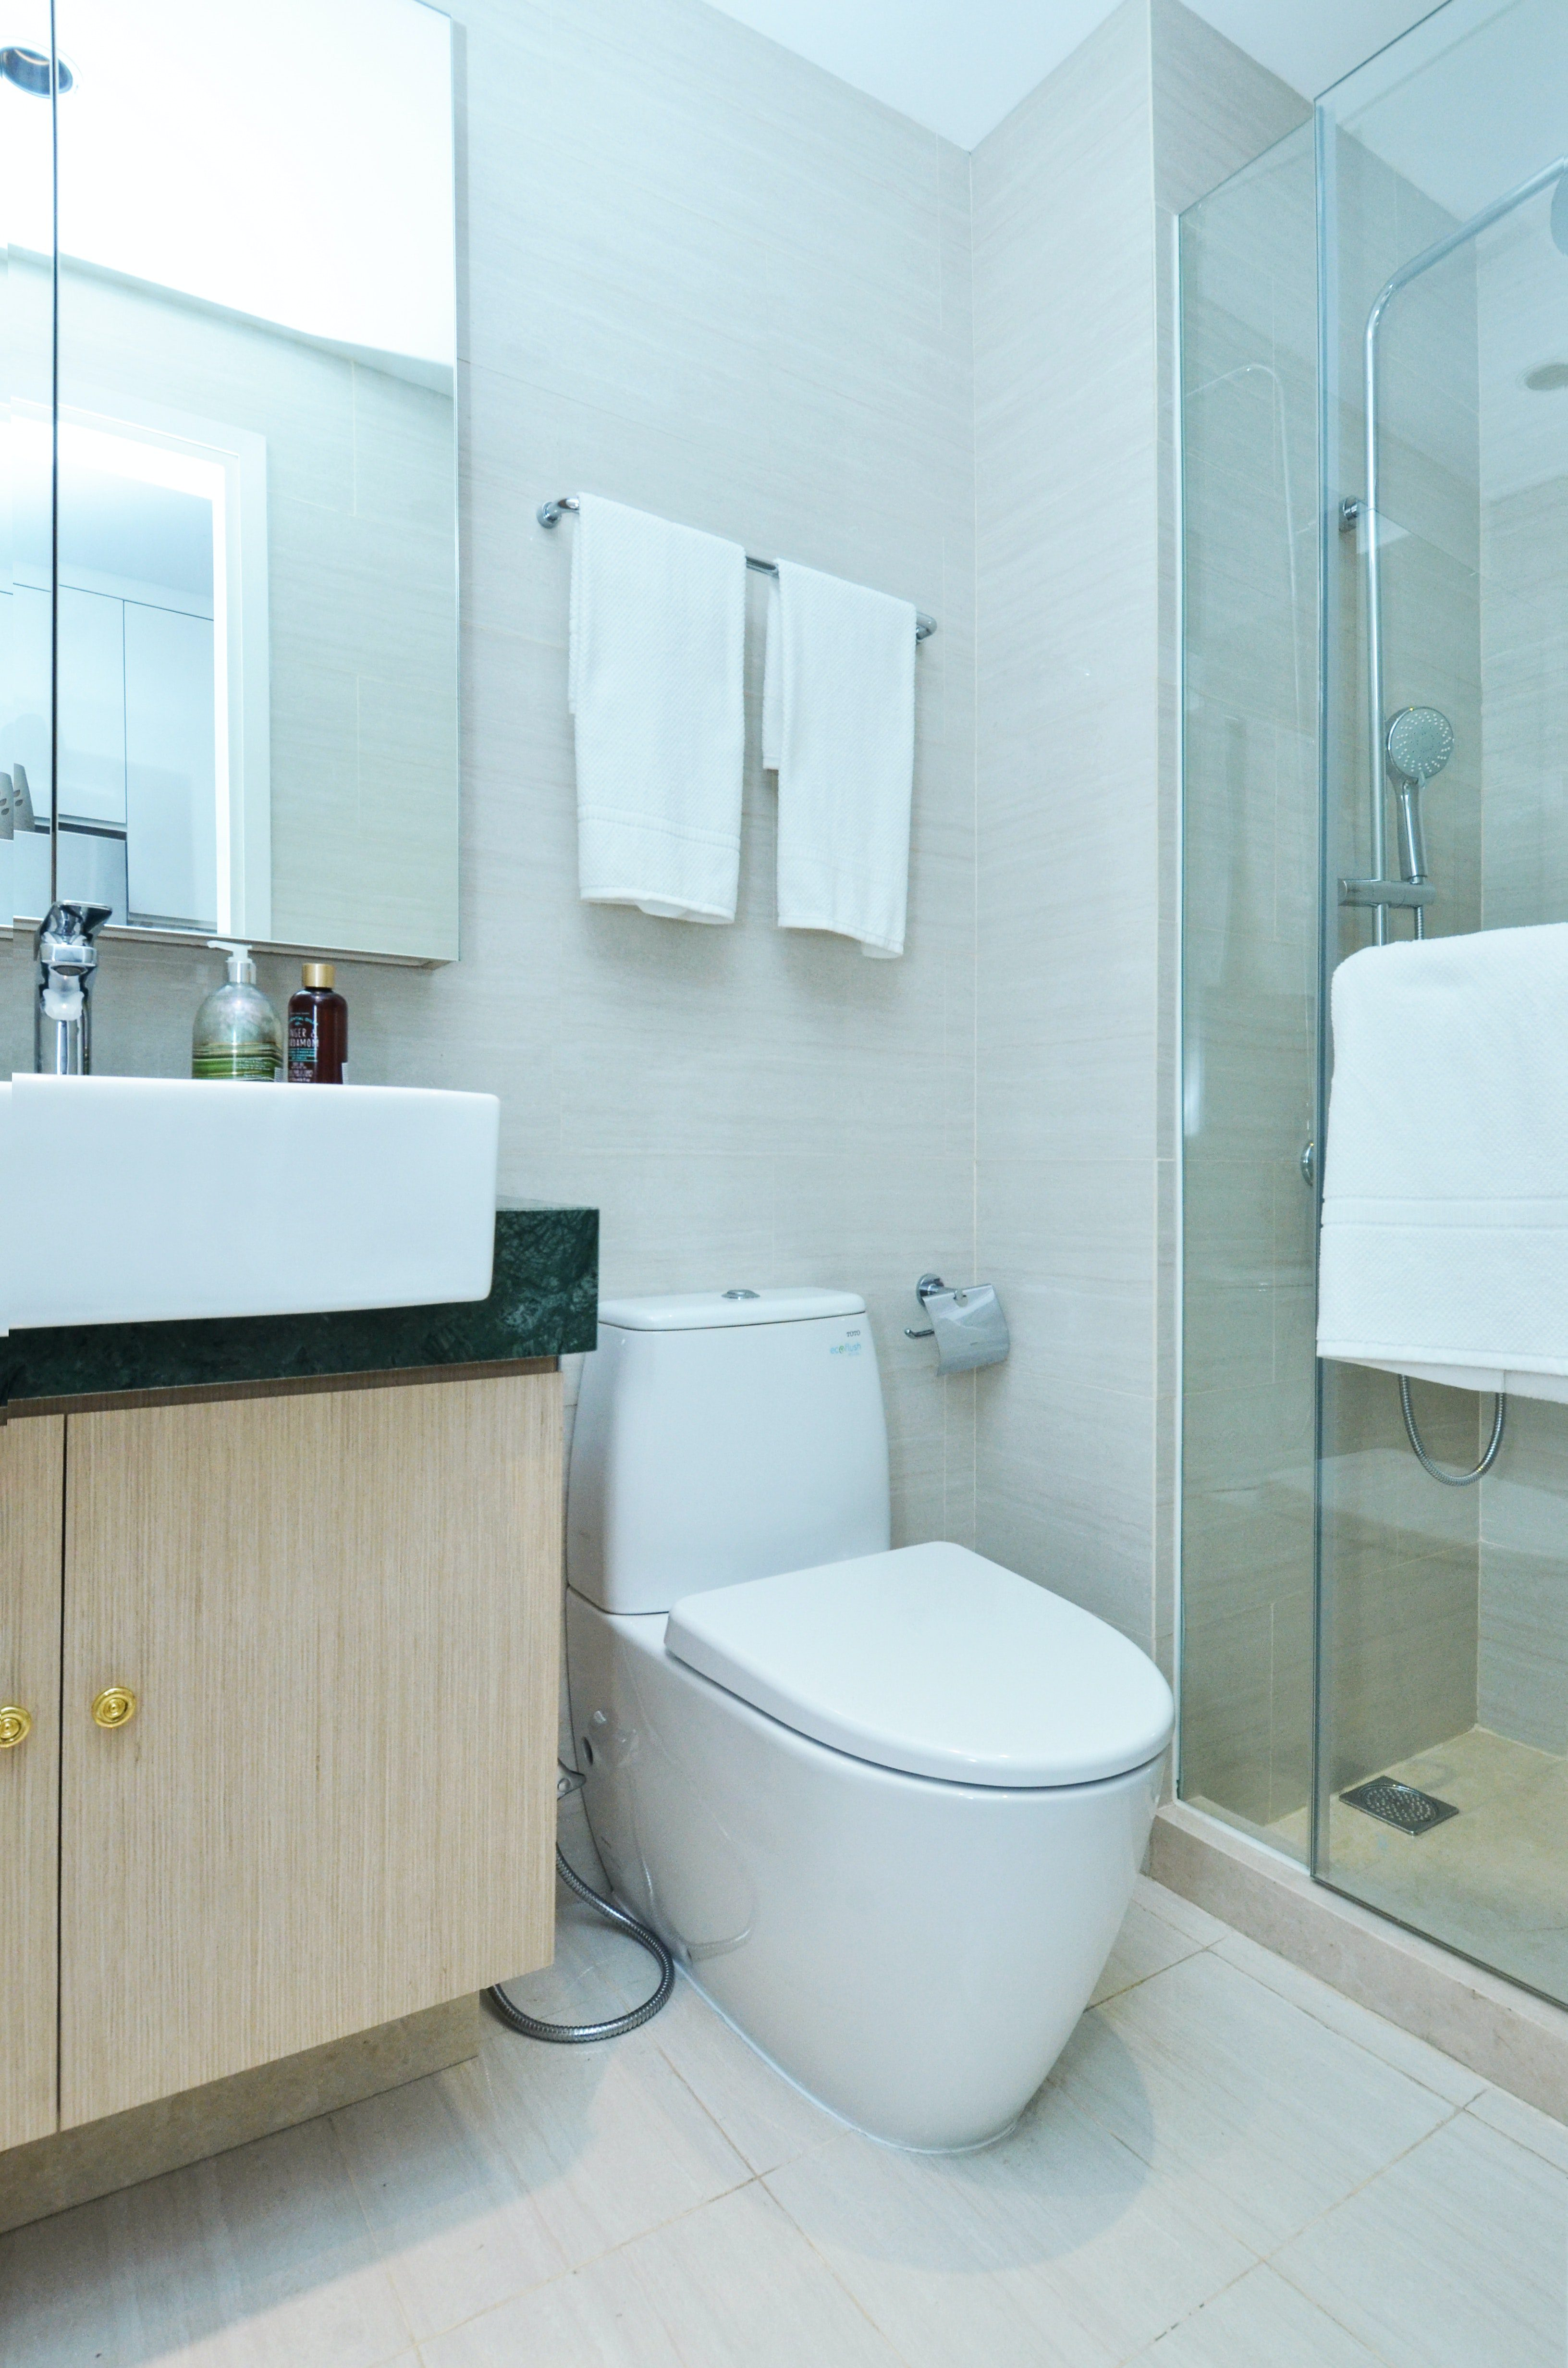 You are currently viewing Pro Tips to Remove Rust Stains from Your Toilet for a Glossy Look